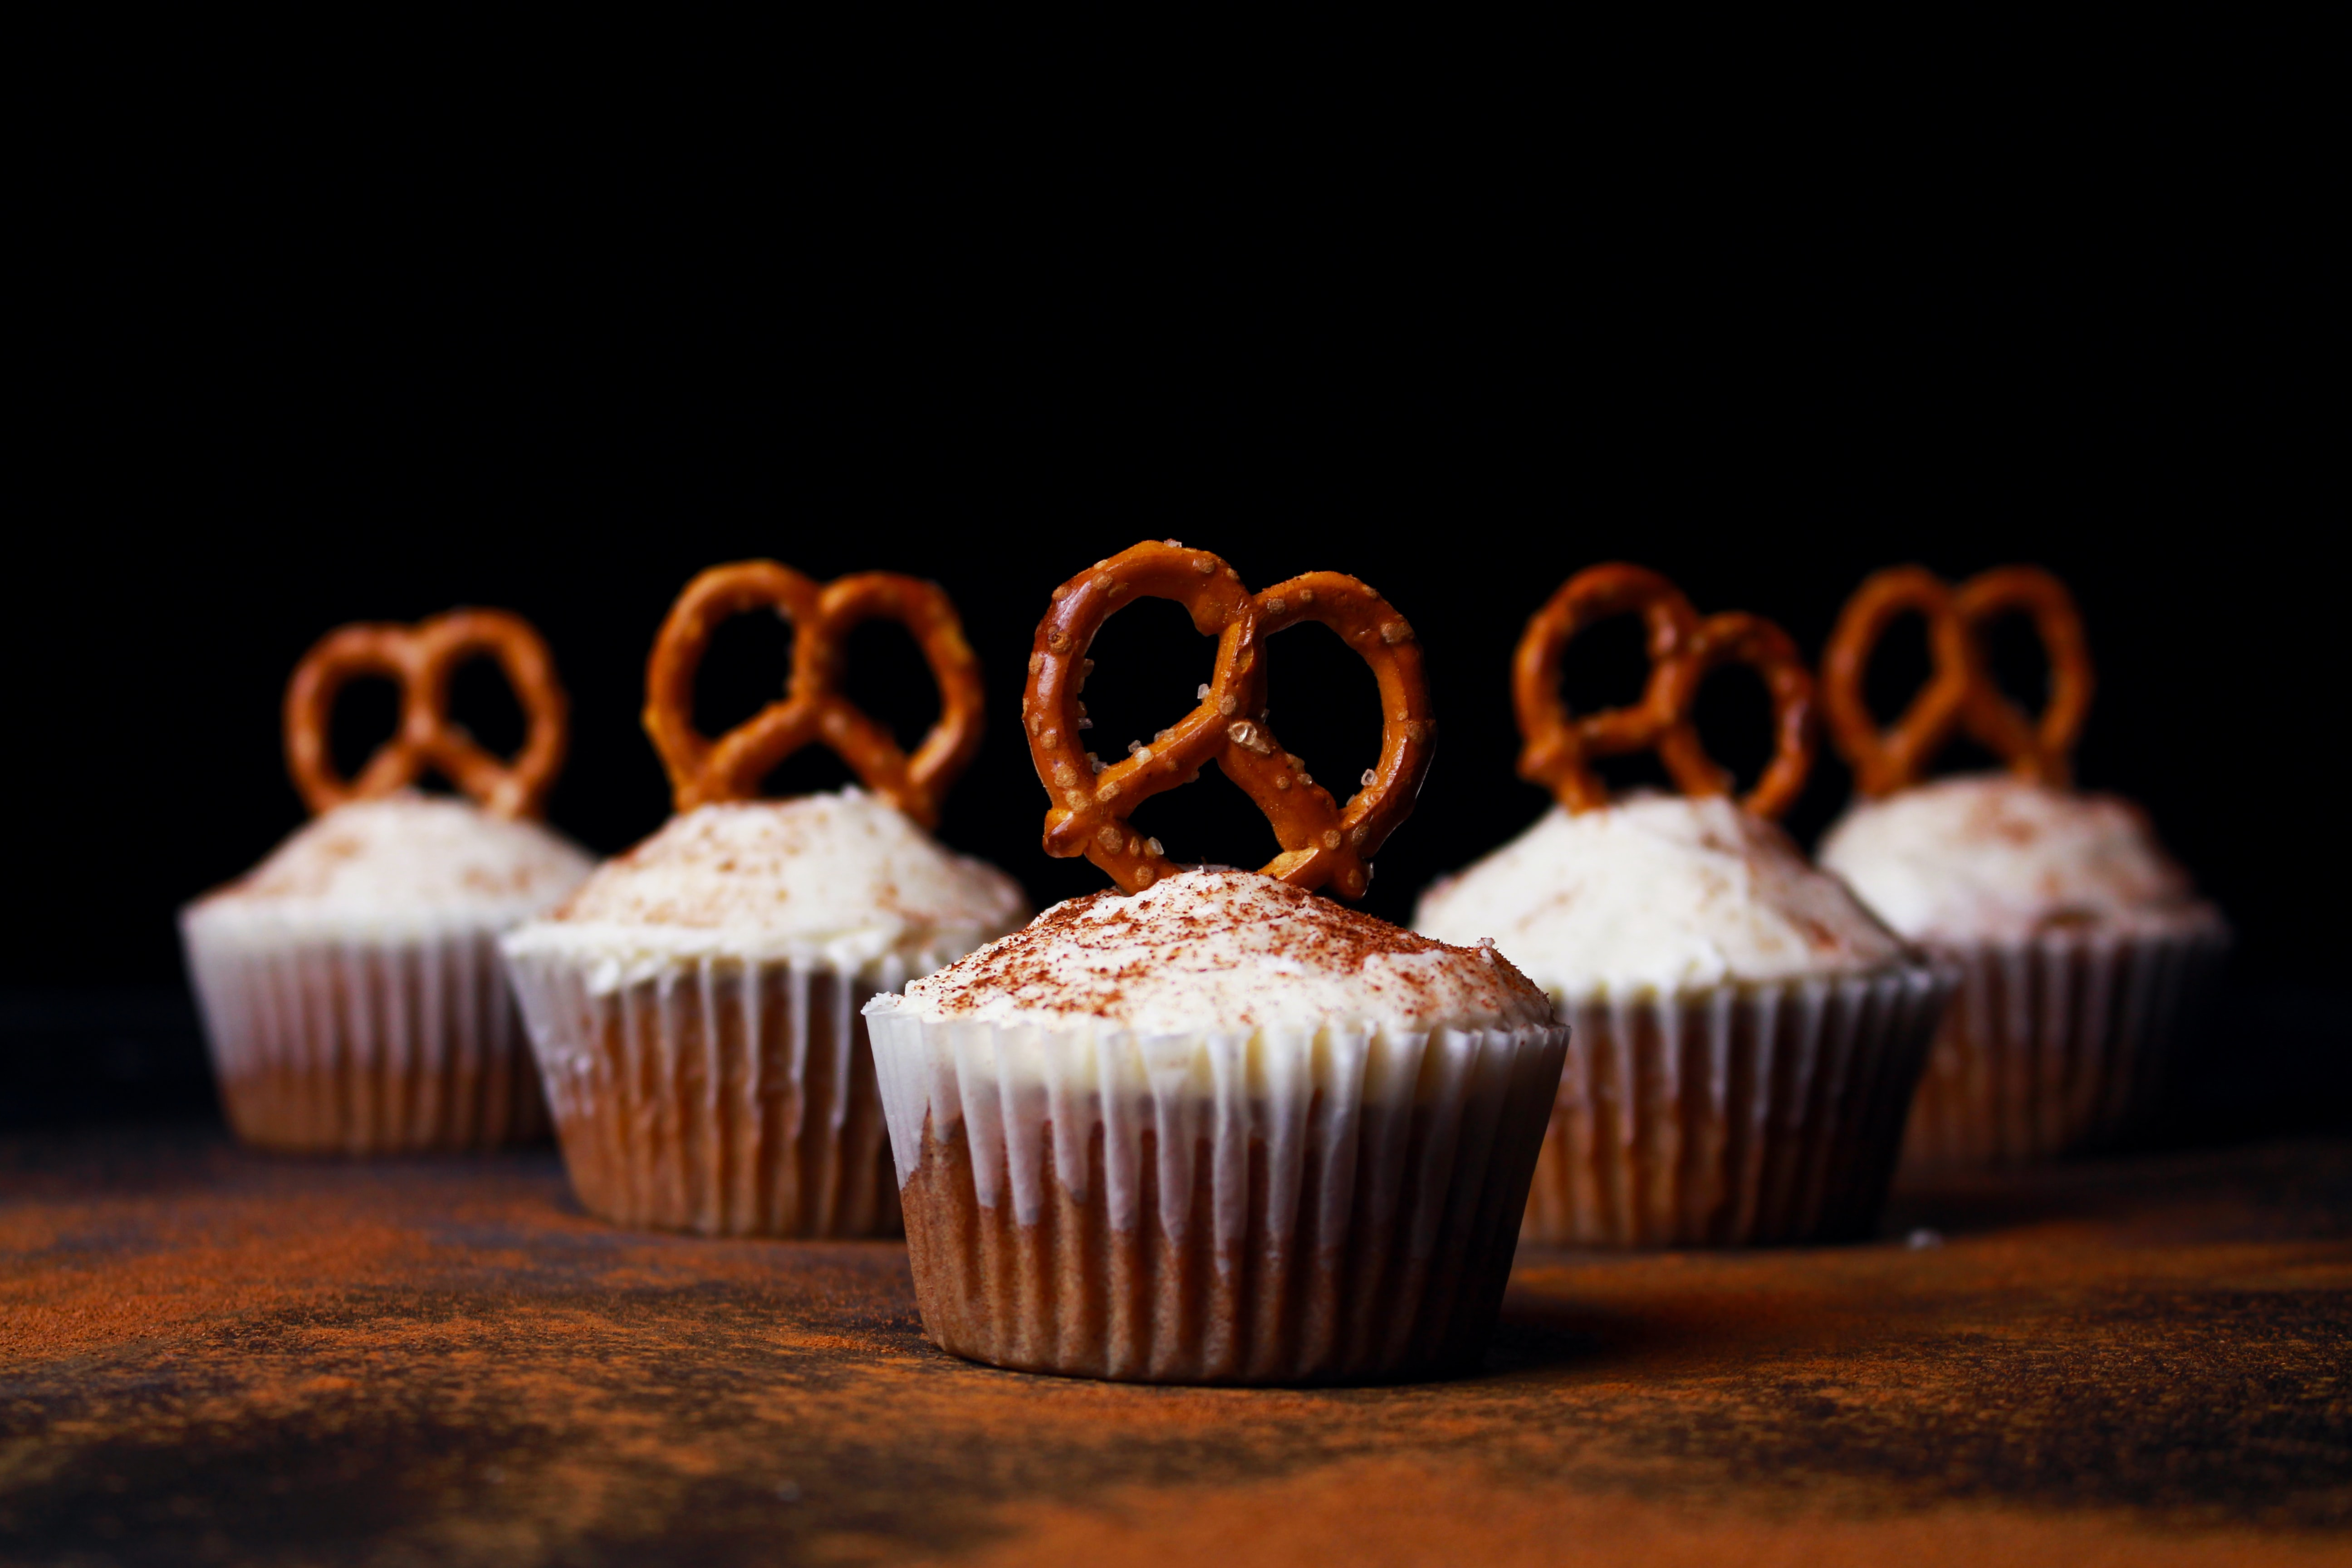 Homemade cupcakes topped with cinnamon and pretzels